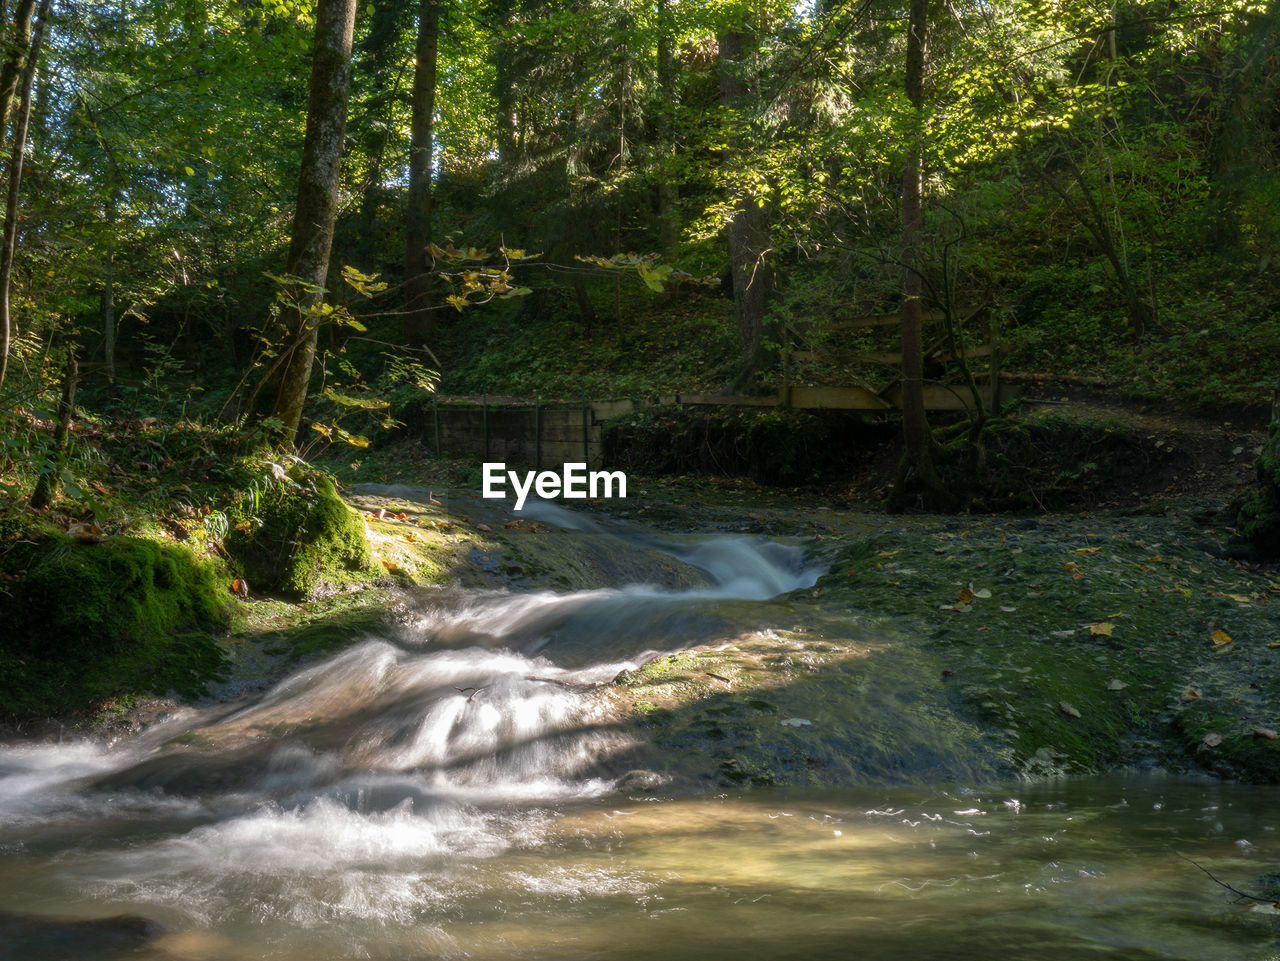 plant, tree, forest, water, nature, motion, beauty in nature, land, growth, scenics - nature, no people, blurred motion, day, green color, tranquility, outdoors, flowing water, environment, flowing, power in nature